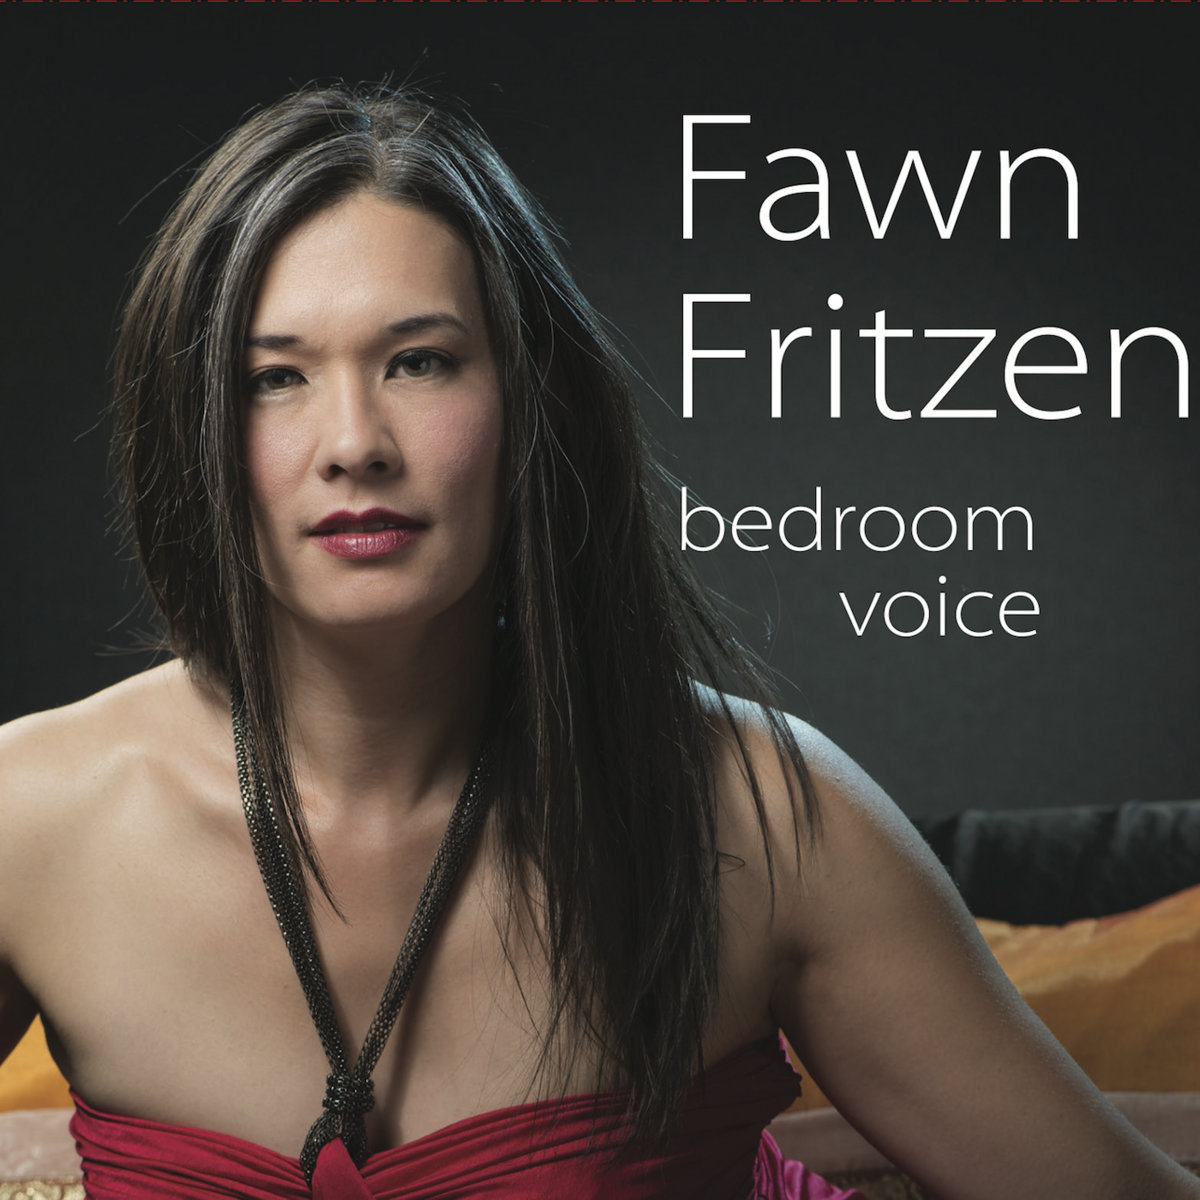 bedroom voice | fawn fritzen